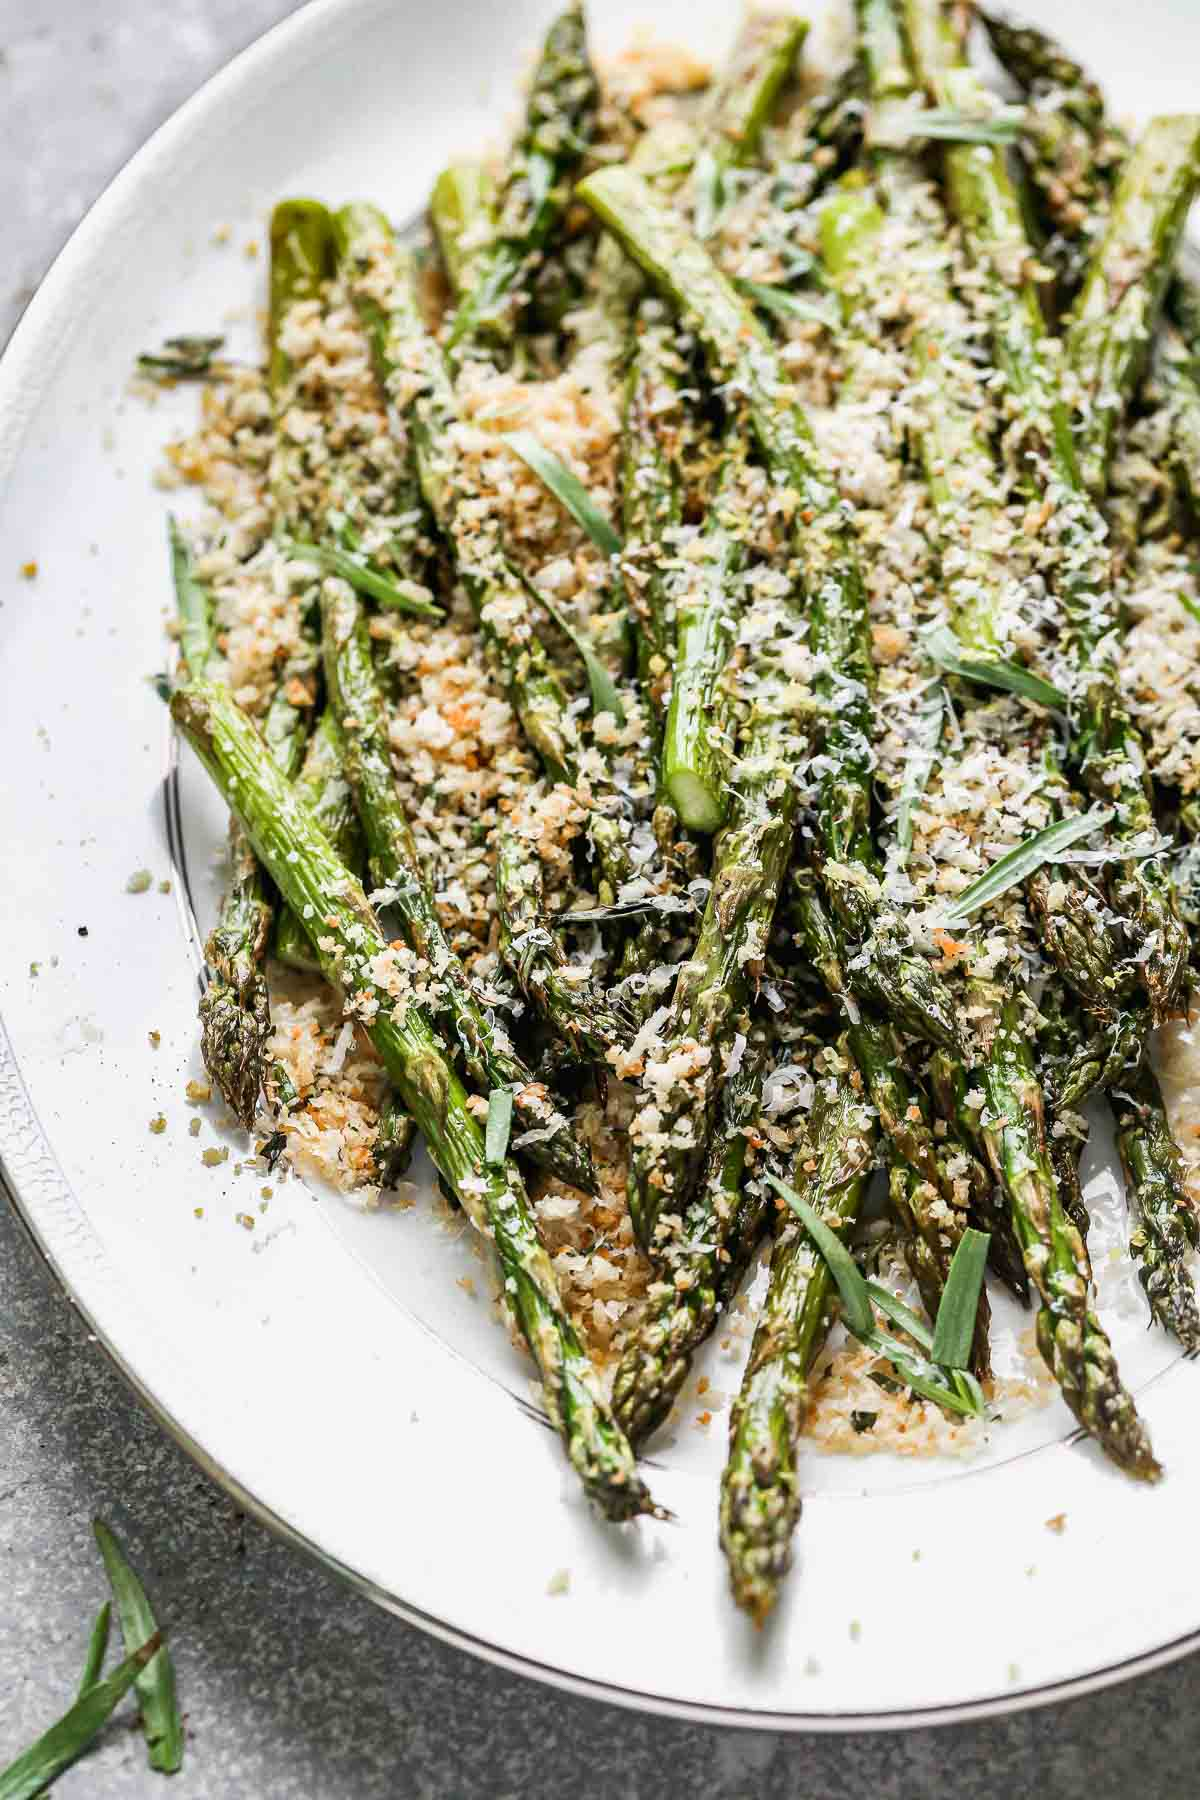 Tender and crispy on the outside with a slight bite on the inside, and covered in cheesy garlicky breadcrumbs (with hints of lemon!), our Easy Roasted Asparagus with Breadcrumbs is the perfect way to up your roasted veggie game this spring. Make a double or triple batch to feed a crowd, or scale it back to feed a family of four.